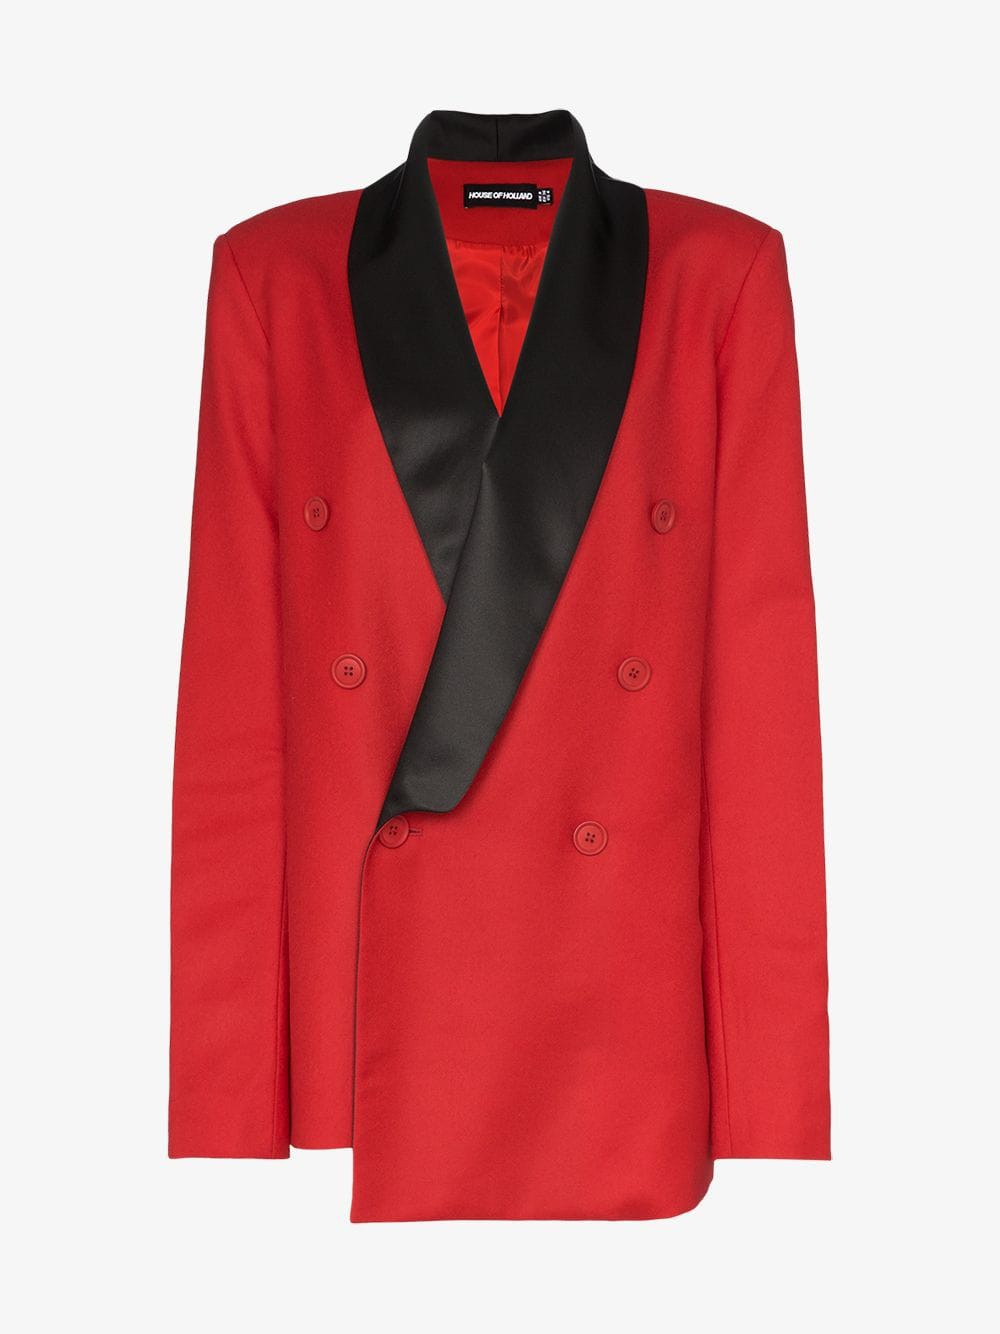 HOUSE OF HOLLAND x THE WOOLMARK COMPANY contrast collar double-breasted blazer jacket in red